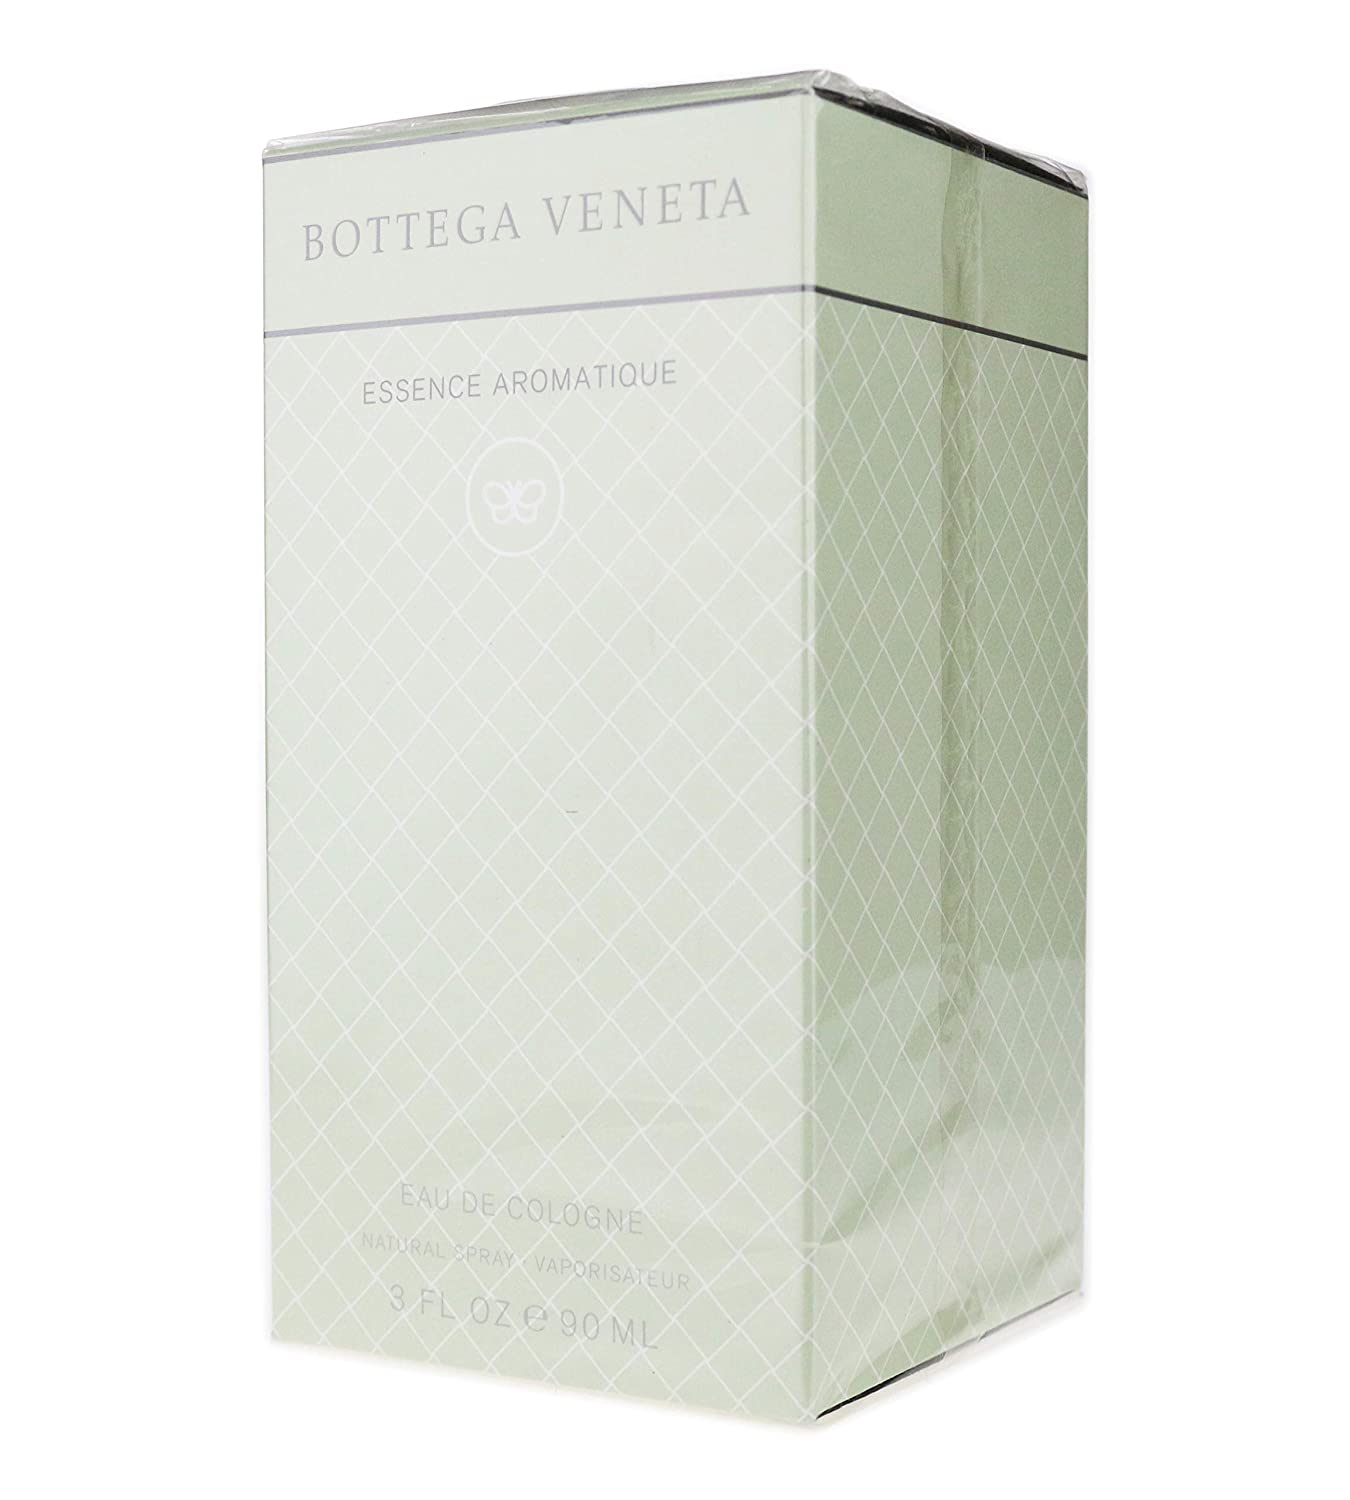 Bottega Veneta Essence Aromatique Eau De Cologne Spray 90ml 3607342694828